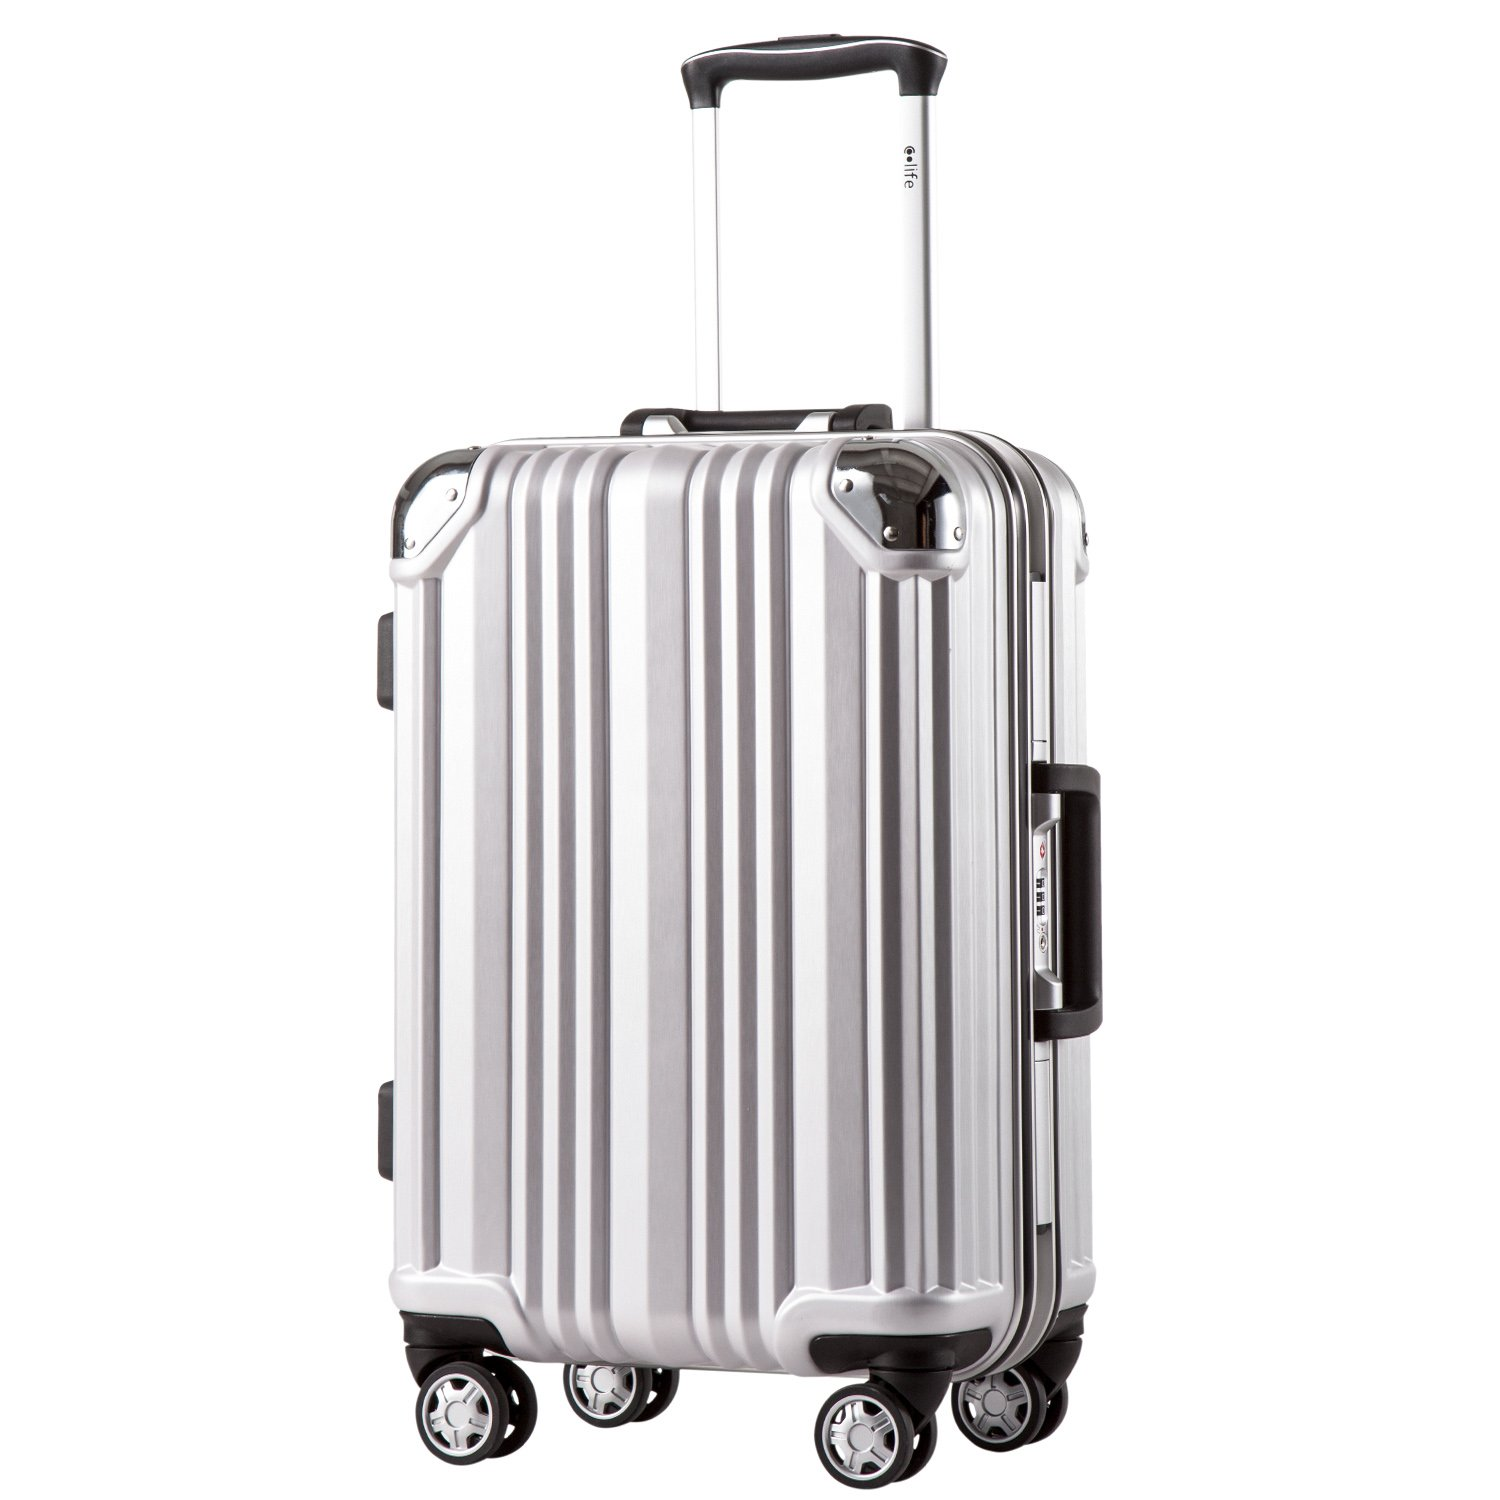 3affa23d54 Coolife LuggageアルミニウムフレームスーツケースTSAロック100PC 20 in in 28 in B074WPK8HF  S(20in)|シルバー シルバー S(20in) 24-スーツケース